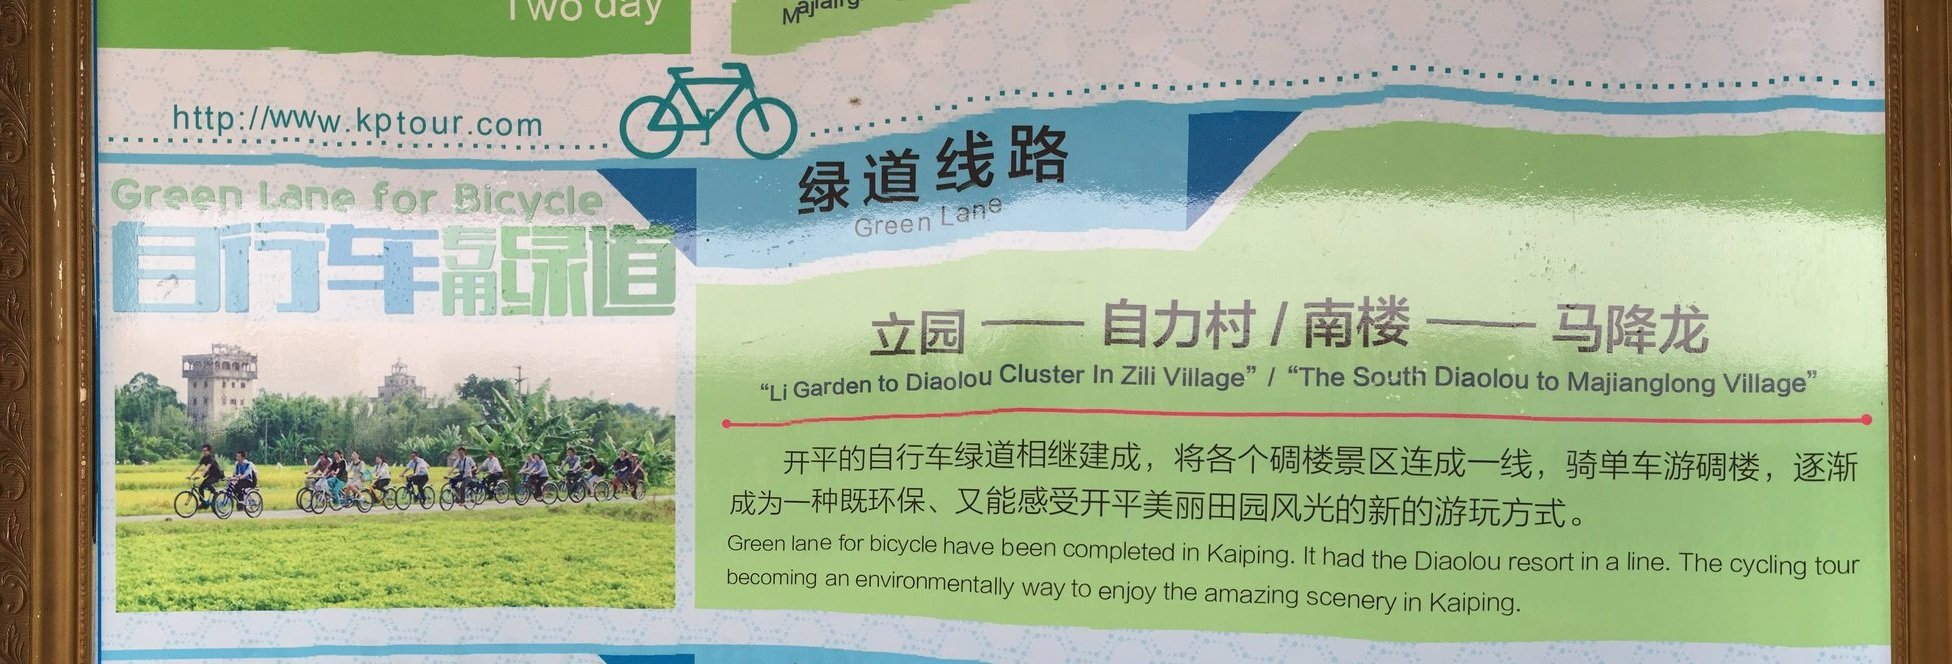 "If i ever travel to the Kaiping Diaolou and Village sites again, I hope to take the advertised bike tour along the ""green lane"" connecting several of the sites. There just wasn't time for it this trip. I can't find any info about it online so i guess it's pretty new."